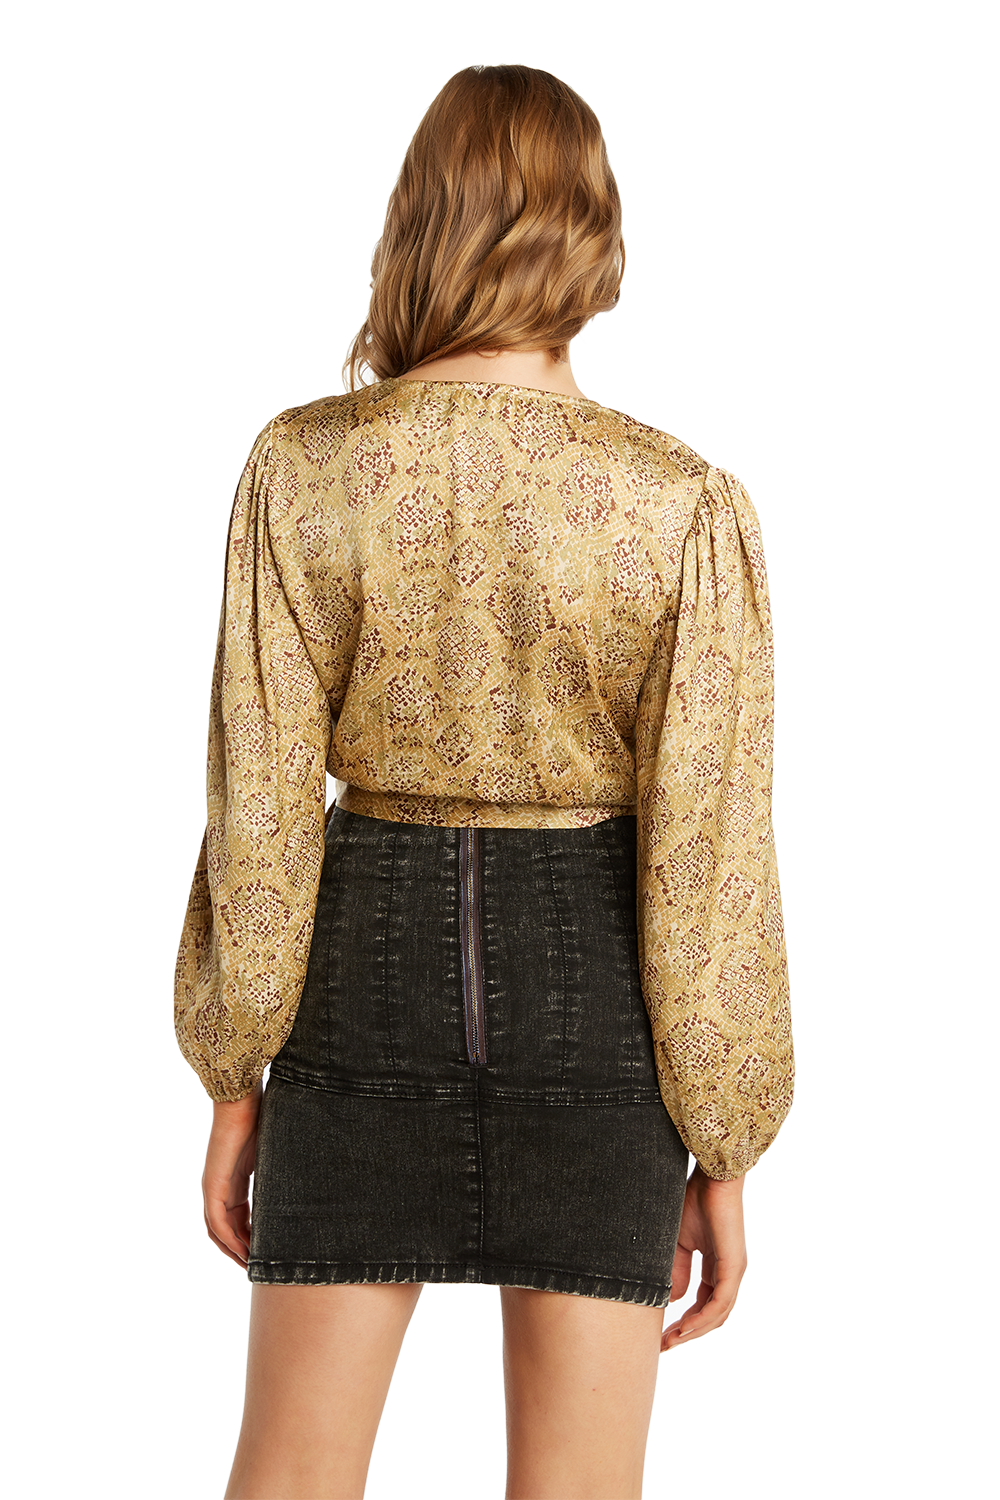 ELENA PRINT BLOUSE in colour APPLEBLOSSOM